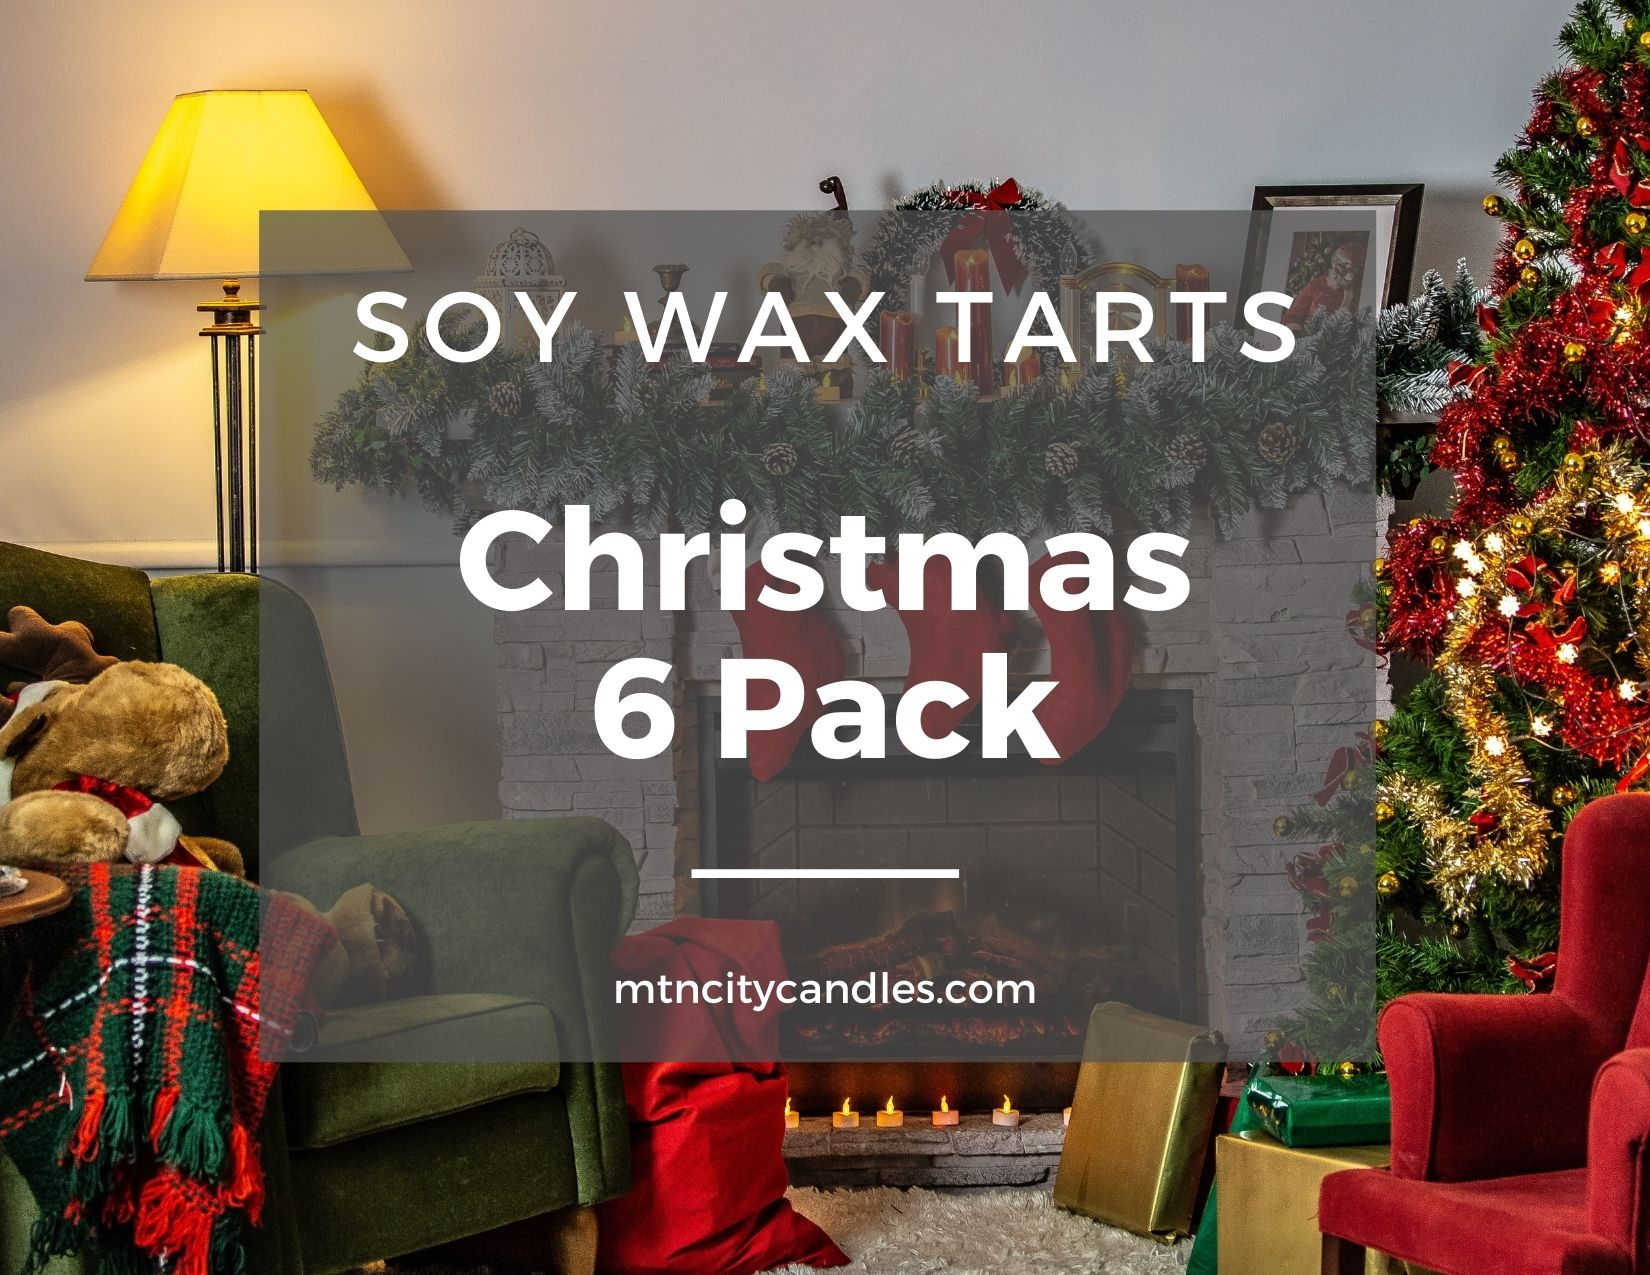 Soy Wax Tart - Christmas 6 Pack